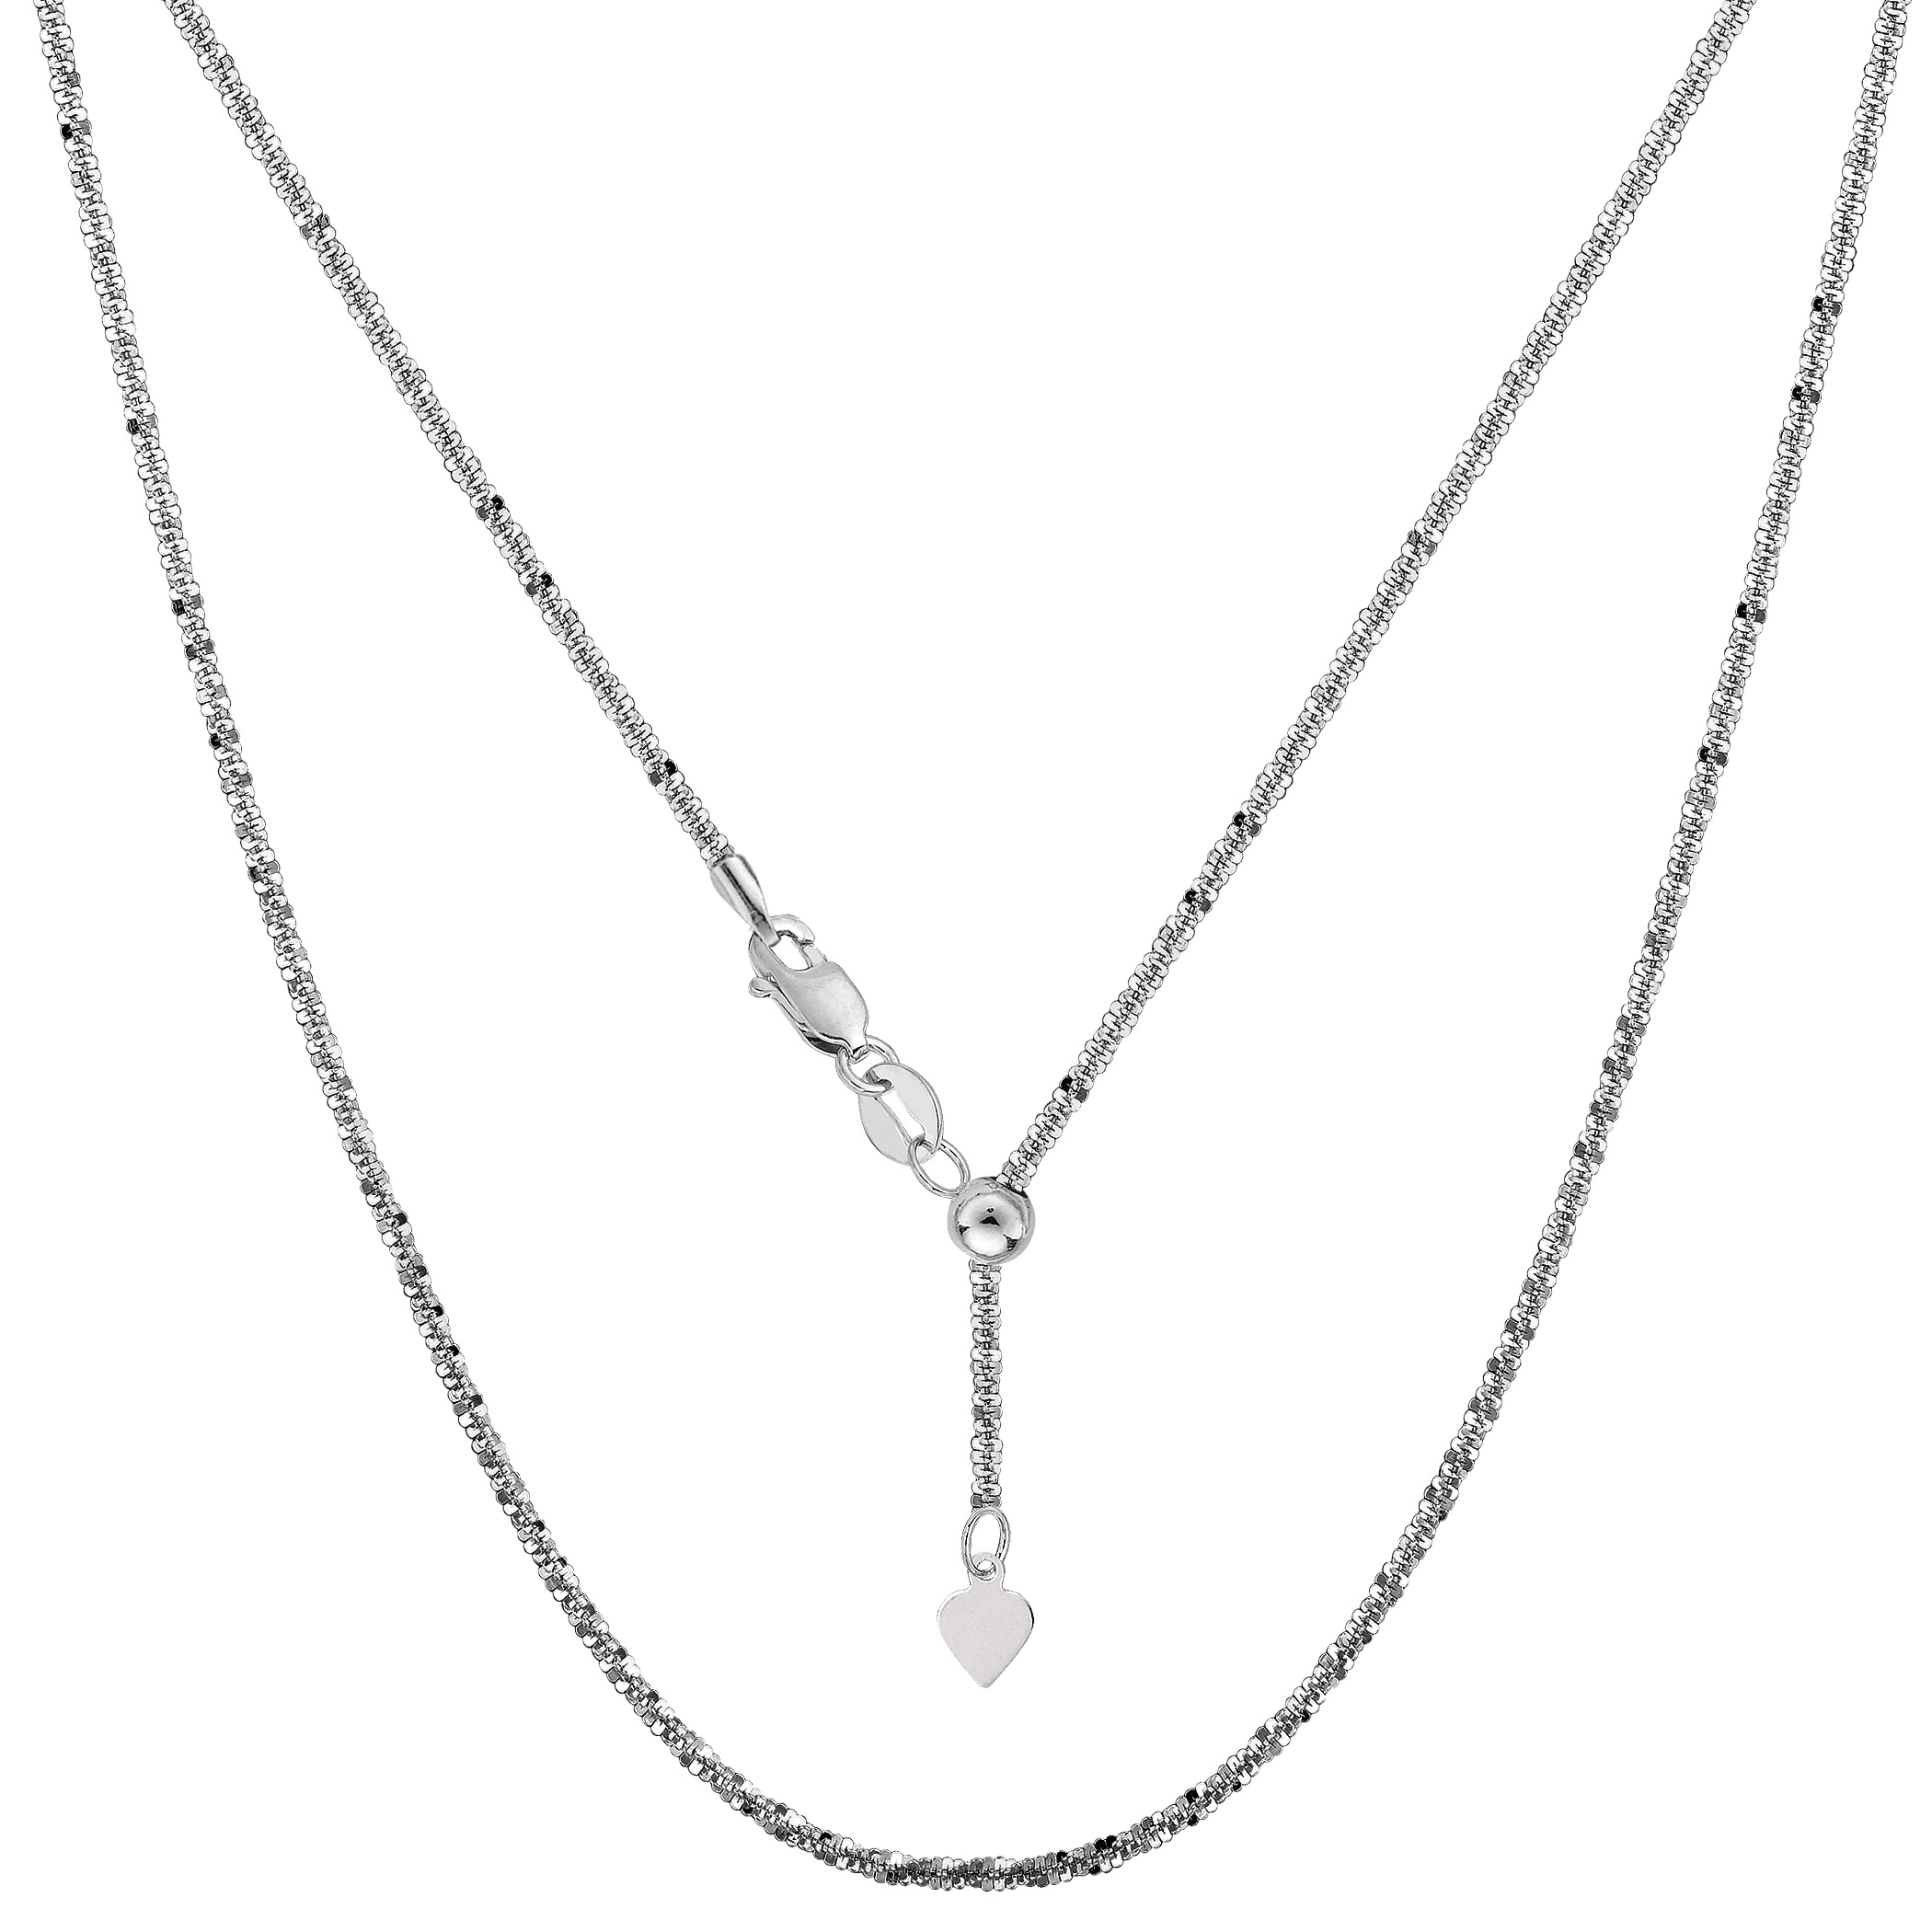 Sterling Silver Rhodium Plated 22  Sliding Adjustable Sparkle Chain Necklace, 1.5mm Using it by itself or combining it with charms and pendants, this 22 inch long adjustable sparkle style chain is a perfect addition to any jewelry fashionista collection.